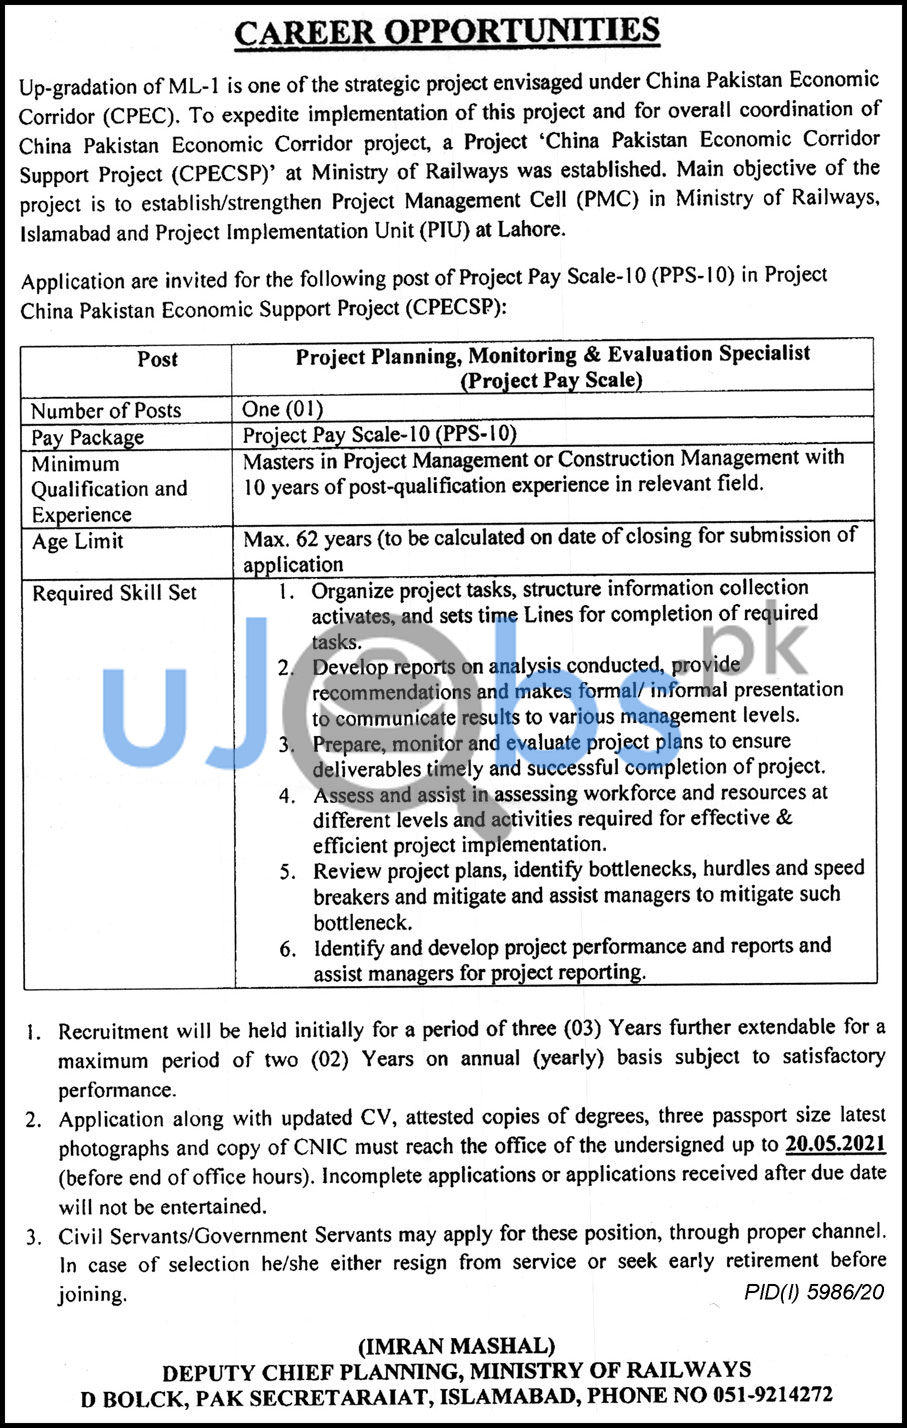 Ministry of Railways Islamabad Jobs May 2021 For Project Planning Monitoring and Evalution Specialist